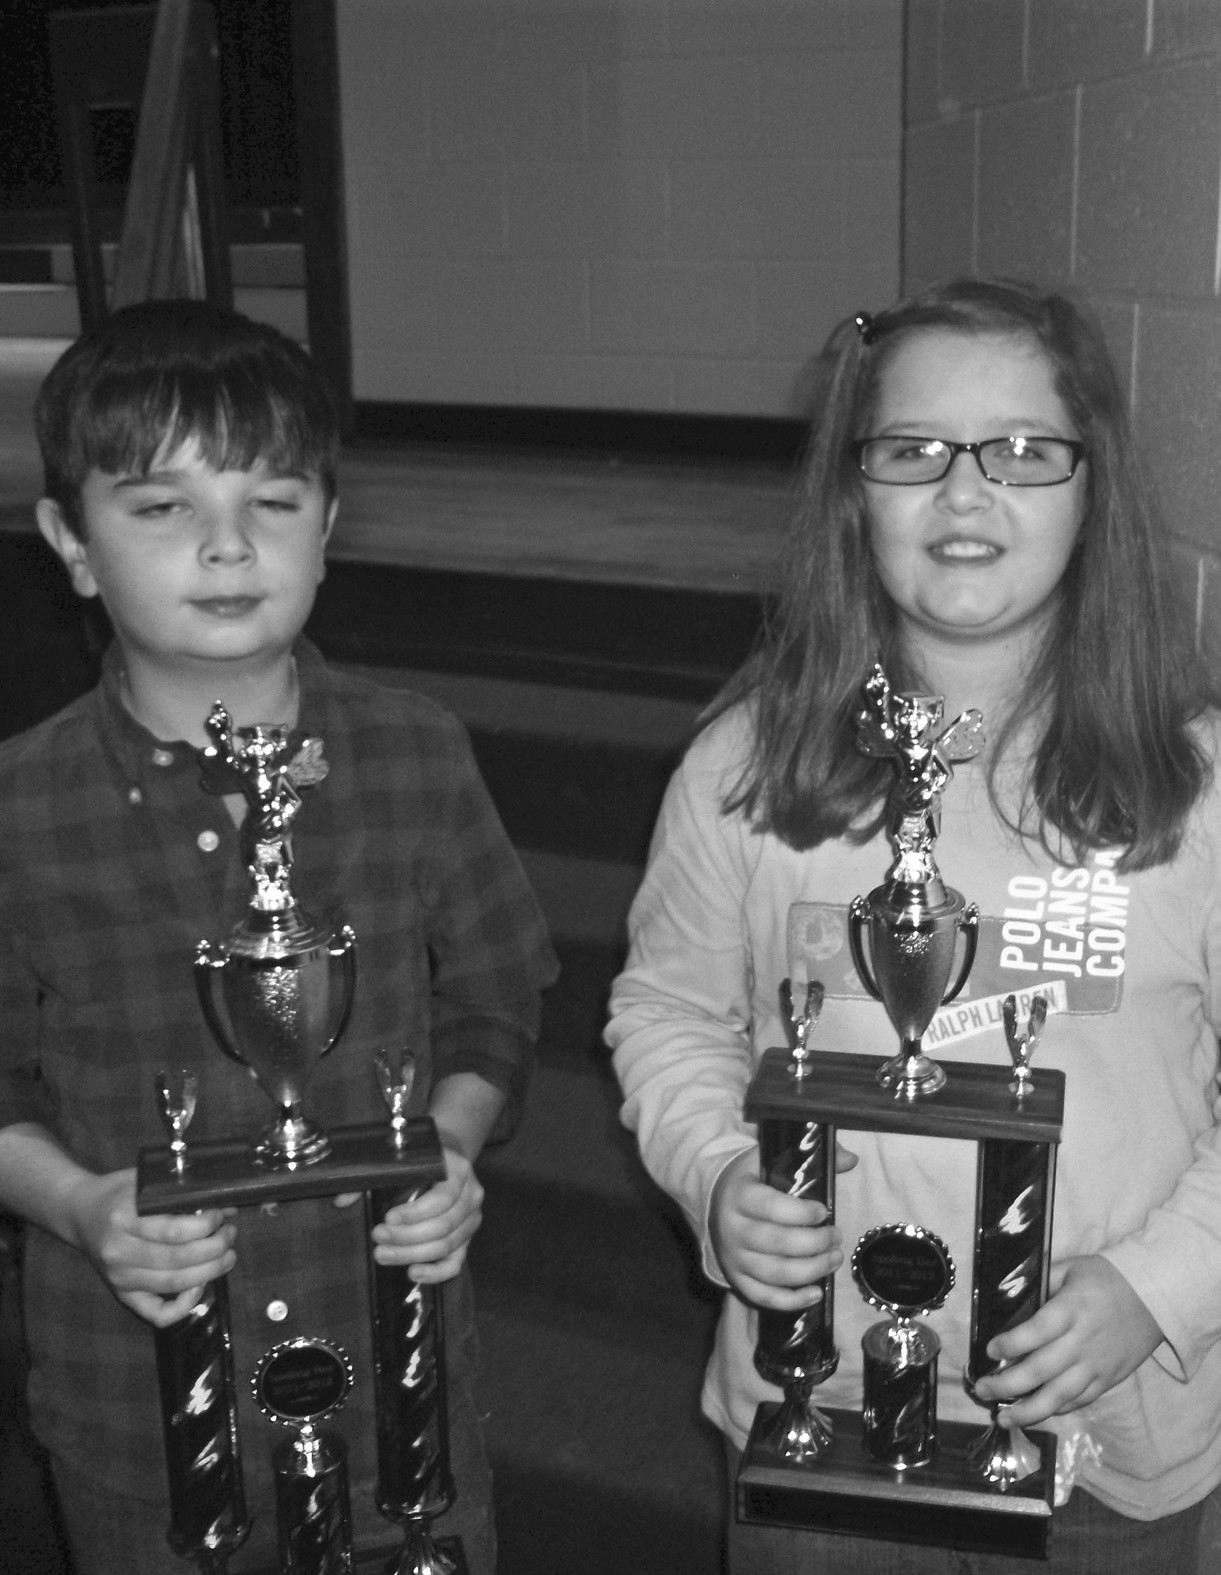 The Oneonta Elementary School Spelling Bee was held recently at the school. Winners were: first place – Dylan Salter, son of Jill and Derek Sherbet; and second place – Emily Fendley, daughter of Lori and Scott Fendley.